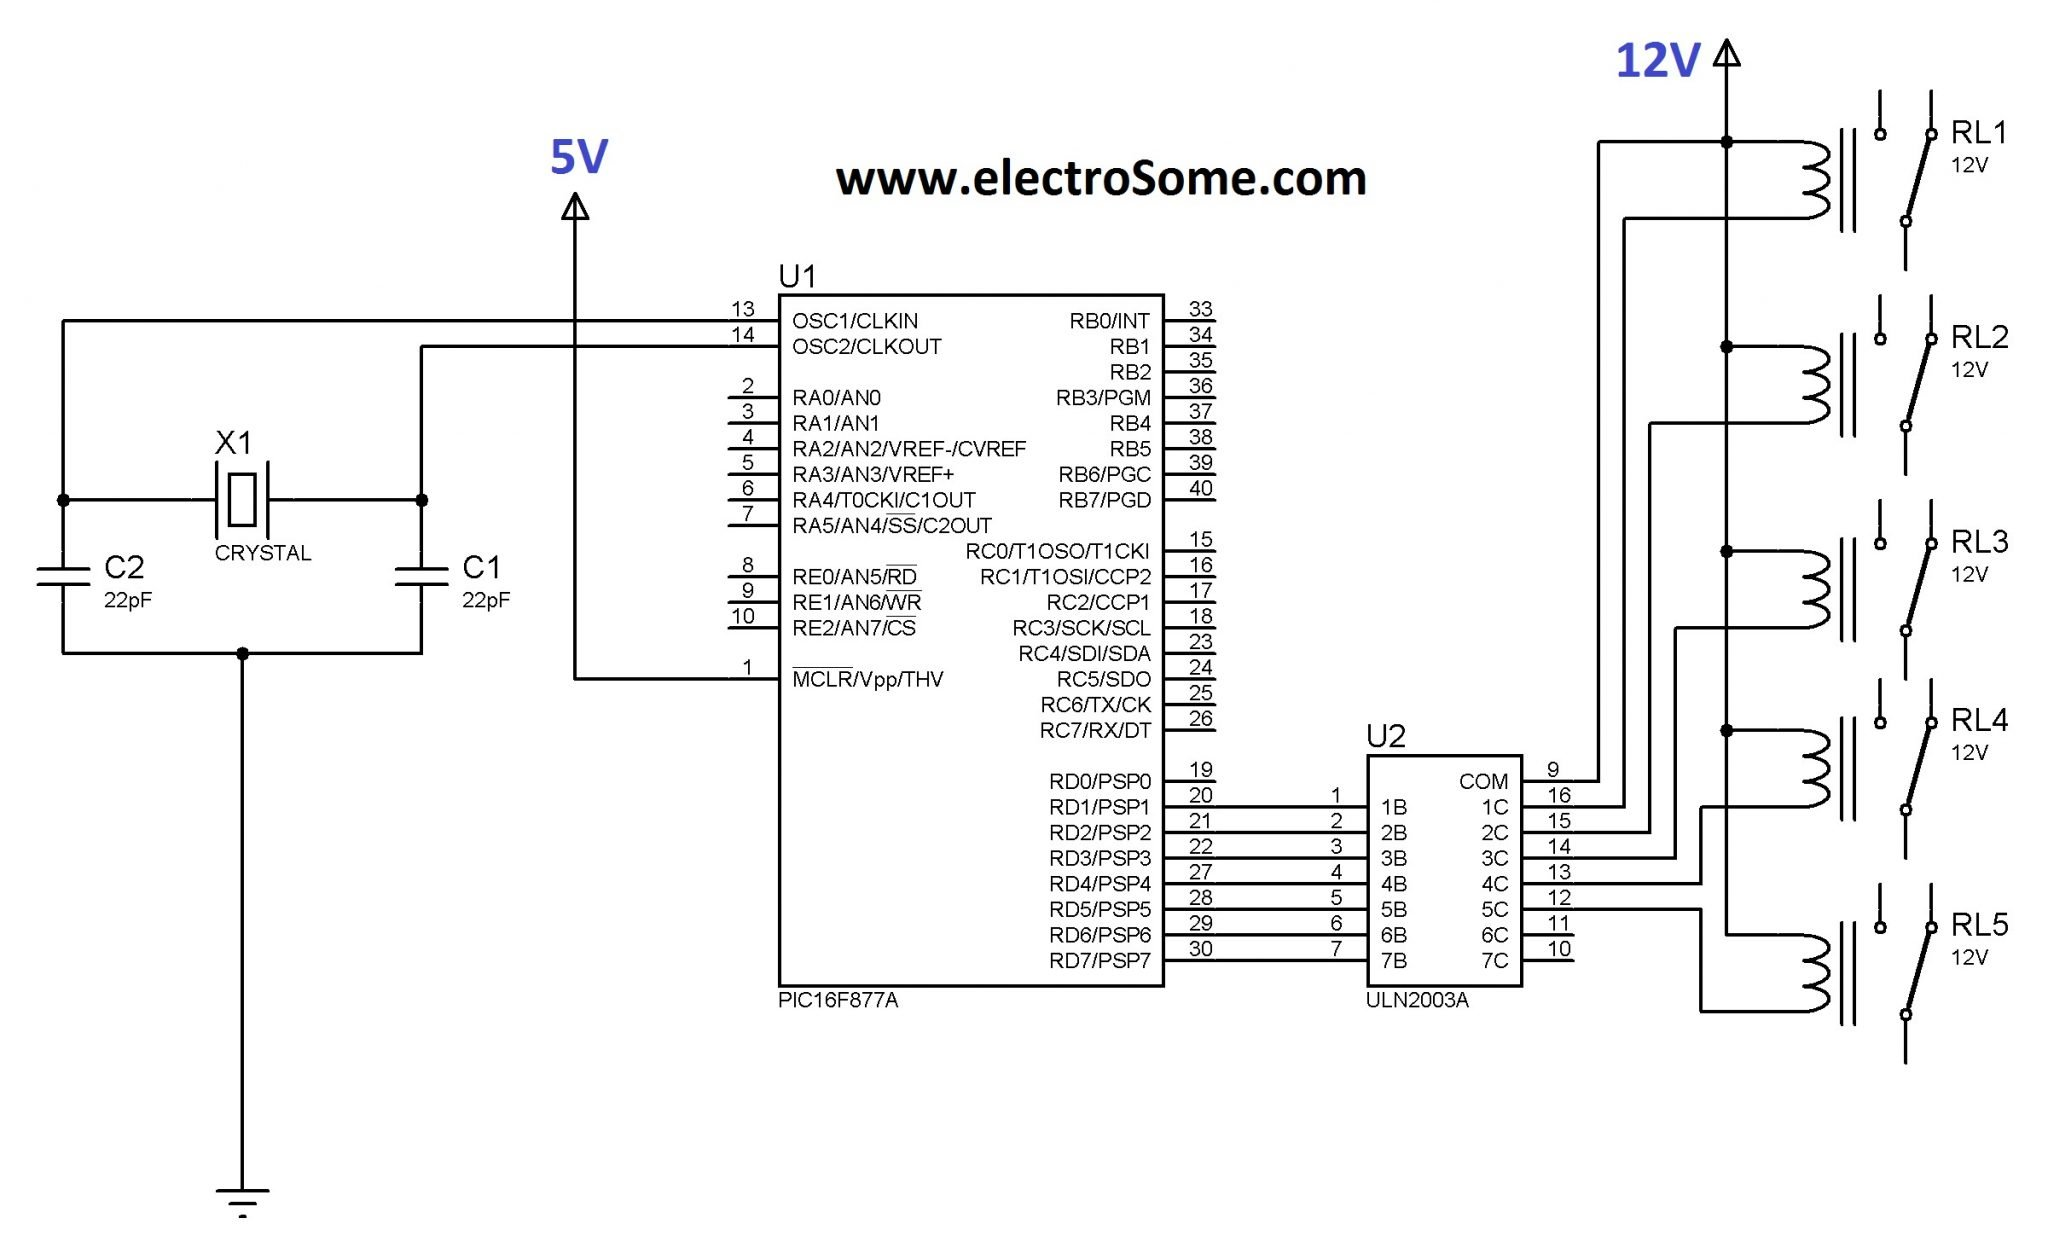 Interfacing relay with pic microcontroller mikroc interfacing relay with pic microcontroller using uln2003 ccuart Images